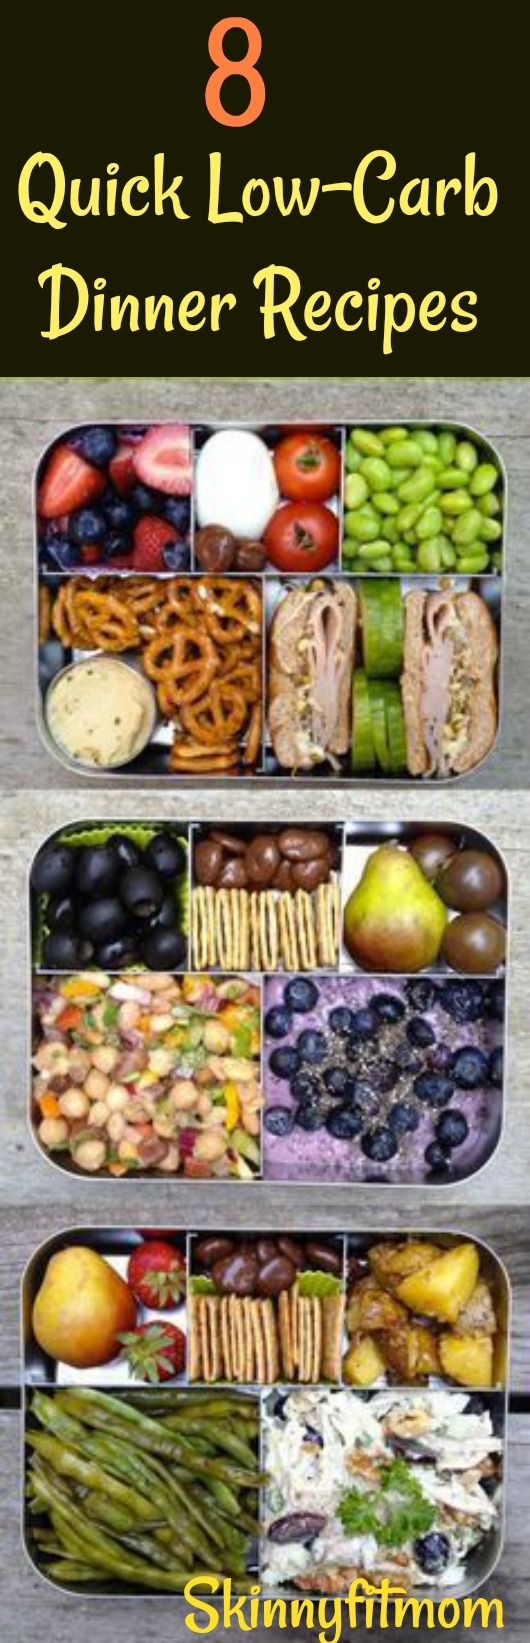 8 Quick Low-Carb Dinner Recipes- Simple and Delicious